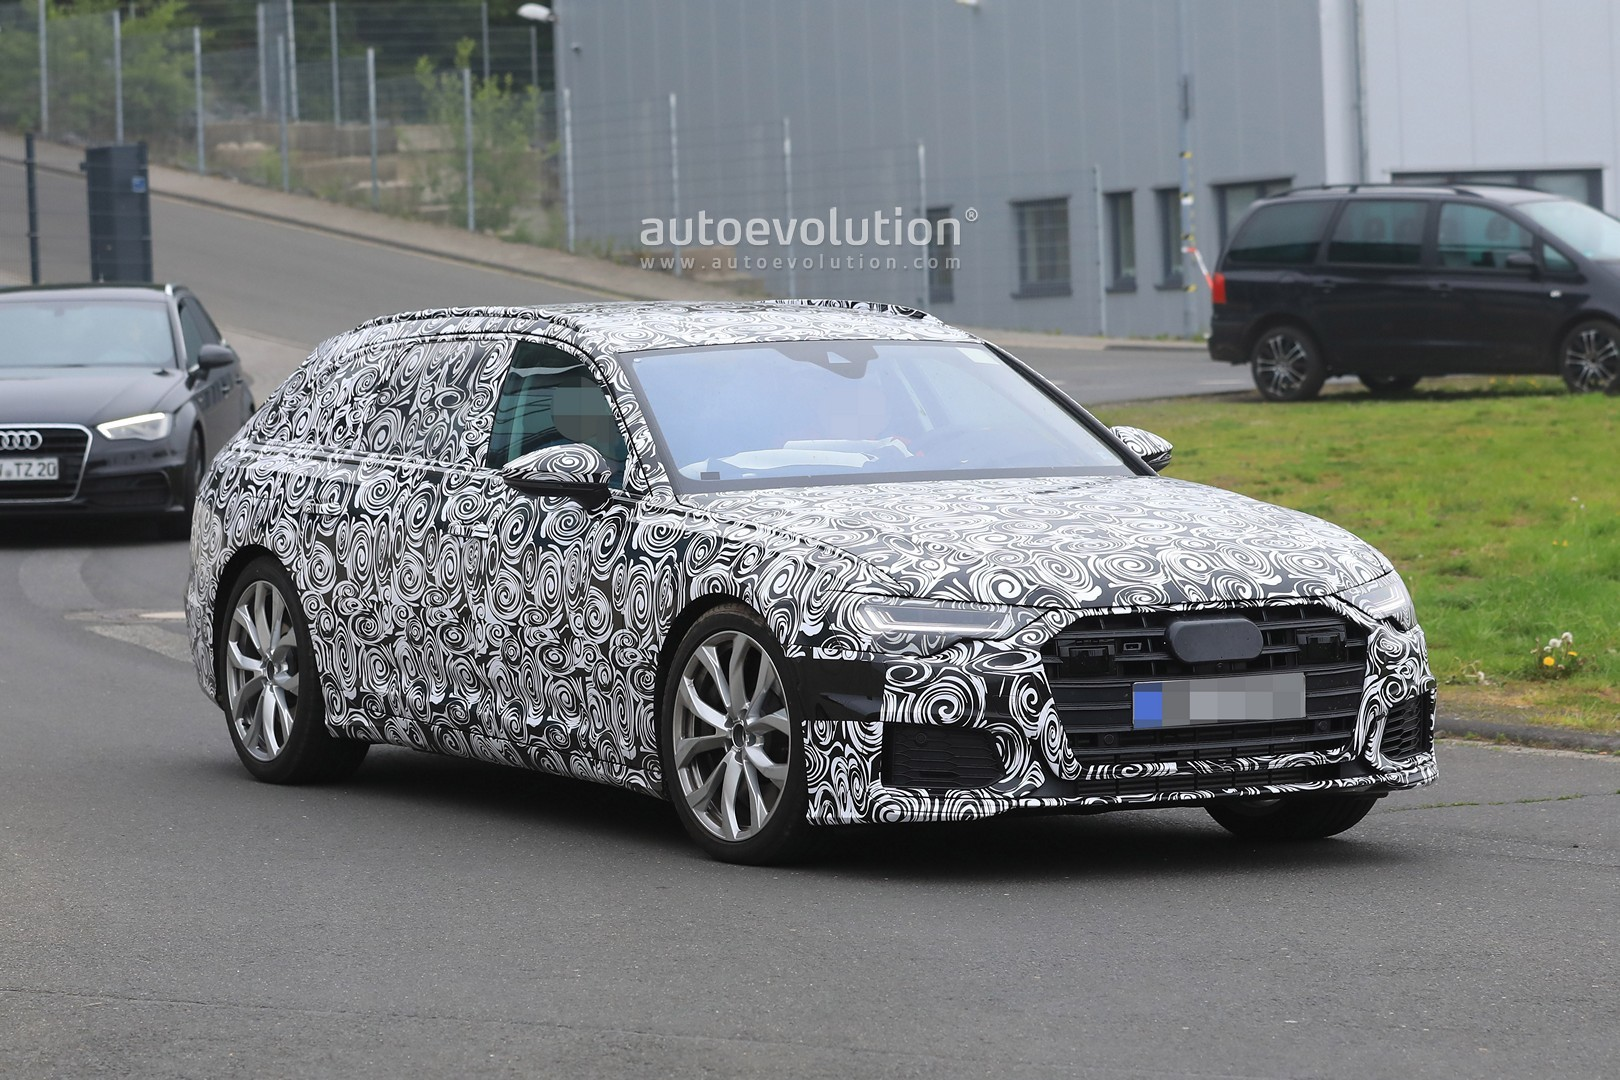 spyshots 2019 audi s6 avant connects 2 9 tfsi with quad exhaust autoevolution. Black Bedroom Furniture Sets. Home Design Ideas